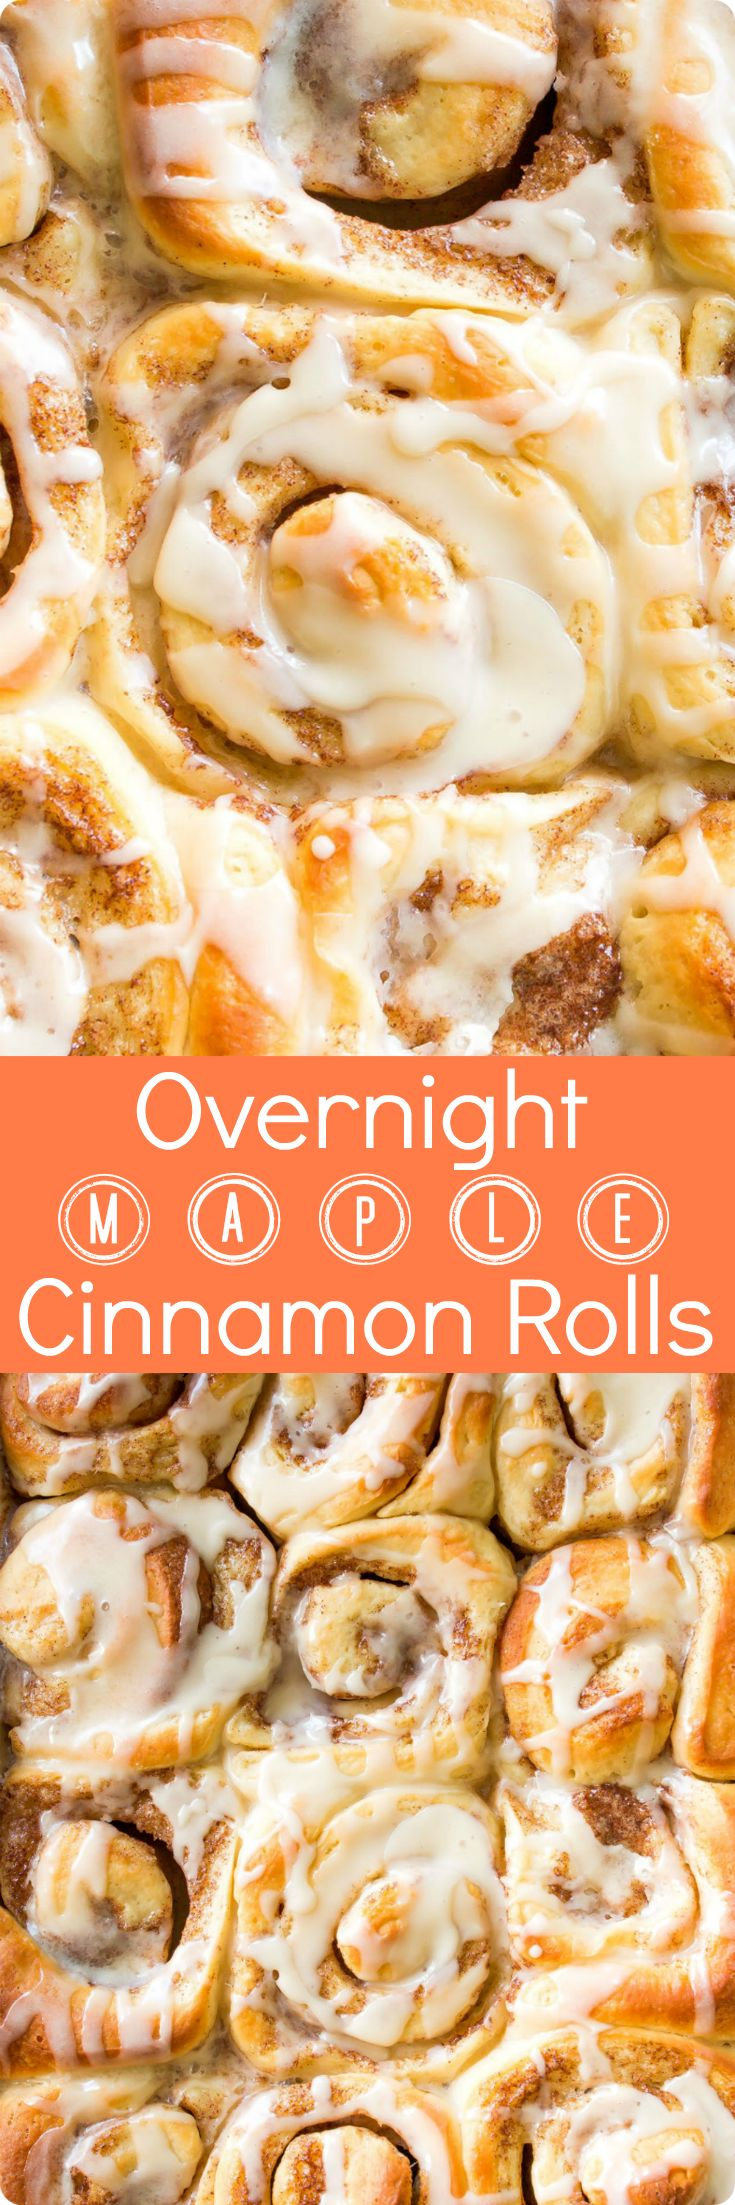 Overnight Maple Cinnamon Rolls | Save time in the morning and wake up to warm, fresh, cinnamon goodness with these overnight maple cinnamon rolls. Find recipe at redstaryeast.com.